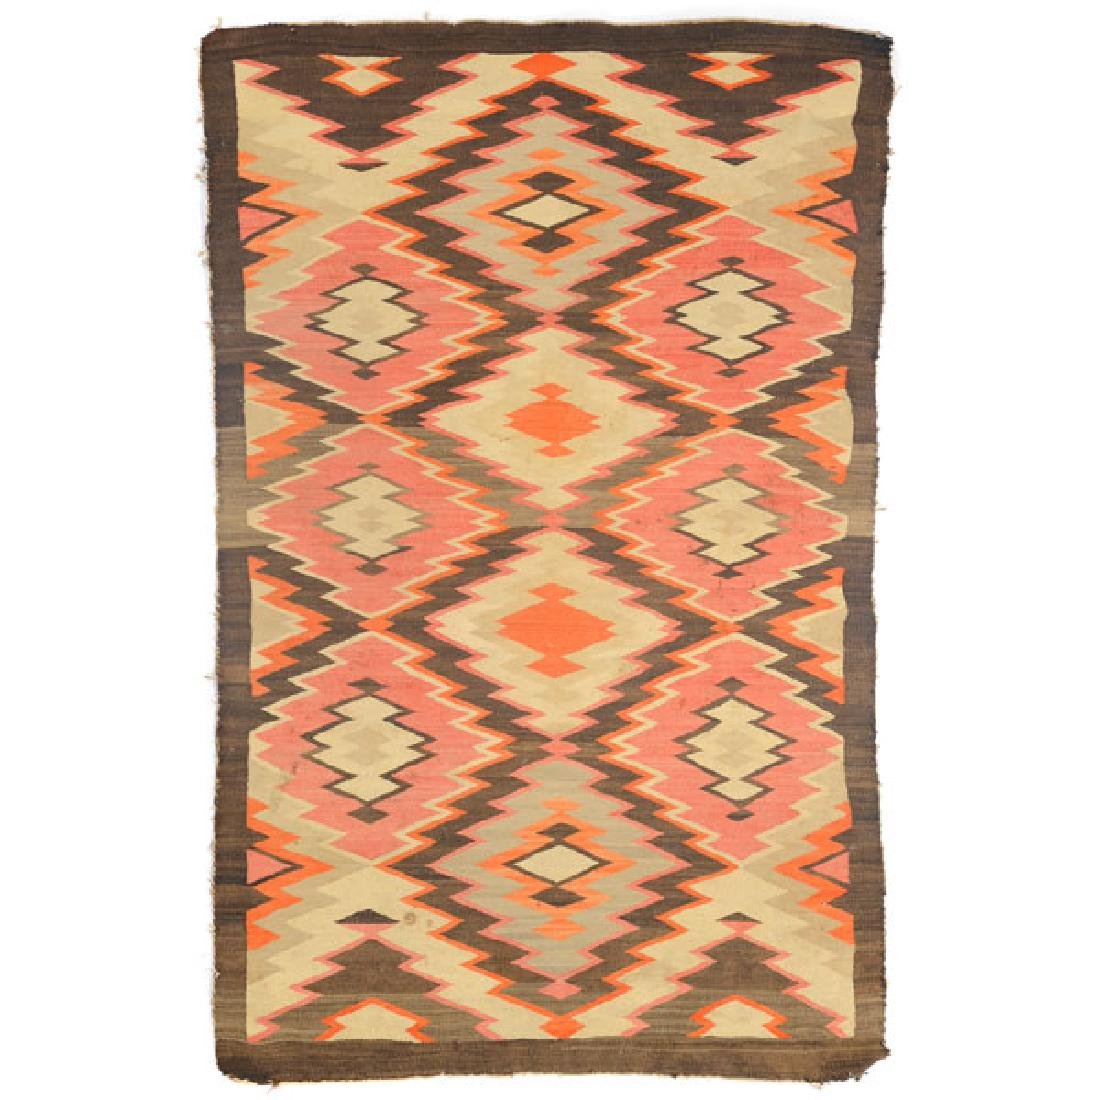 Navajo Rug with Patchwork Diamond